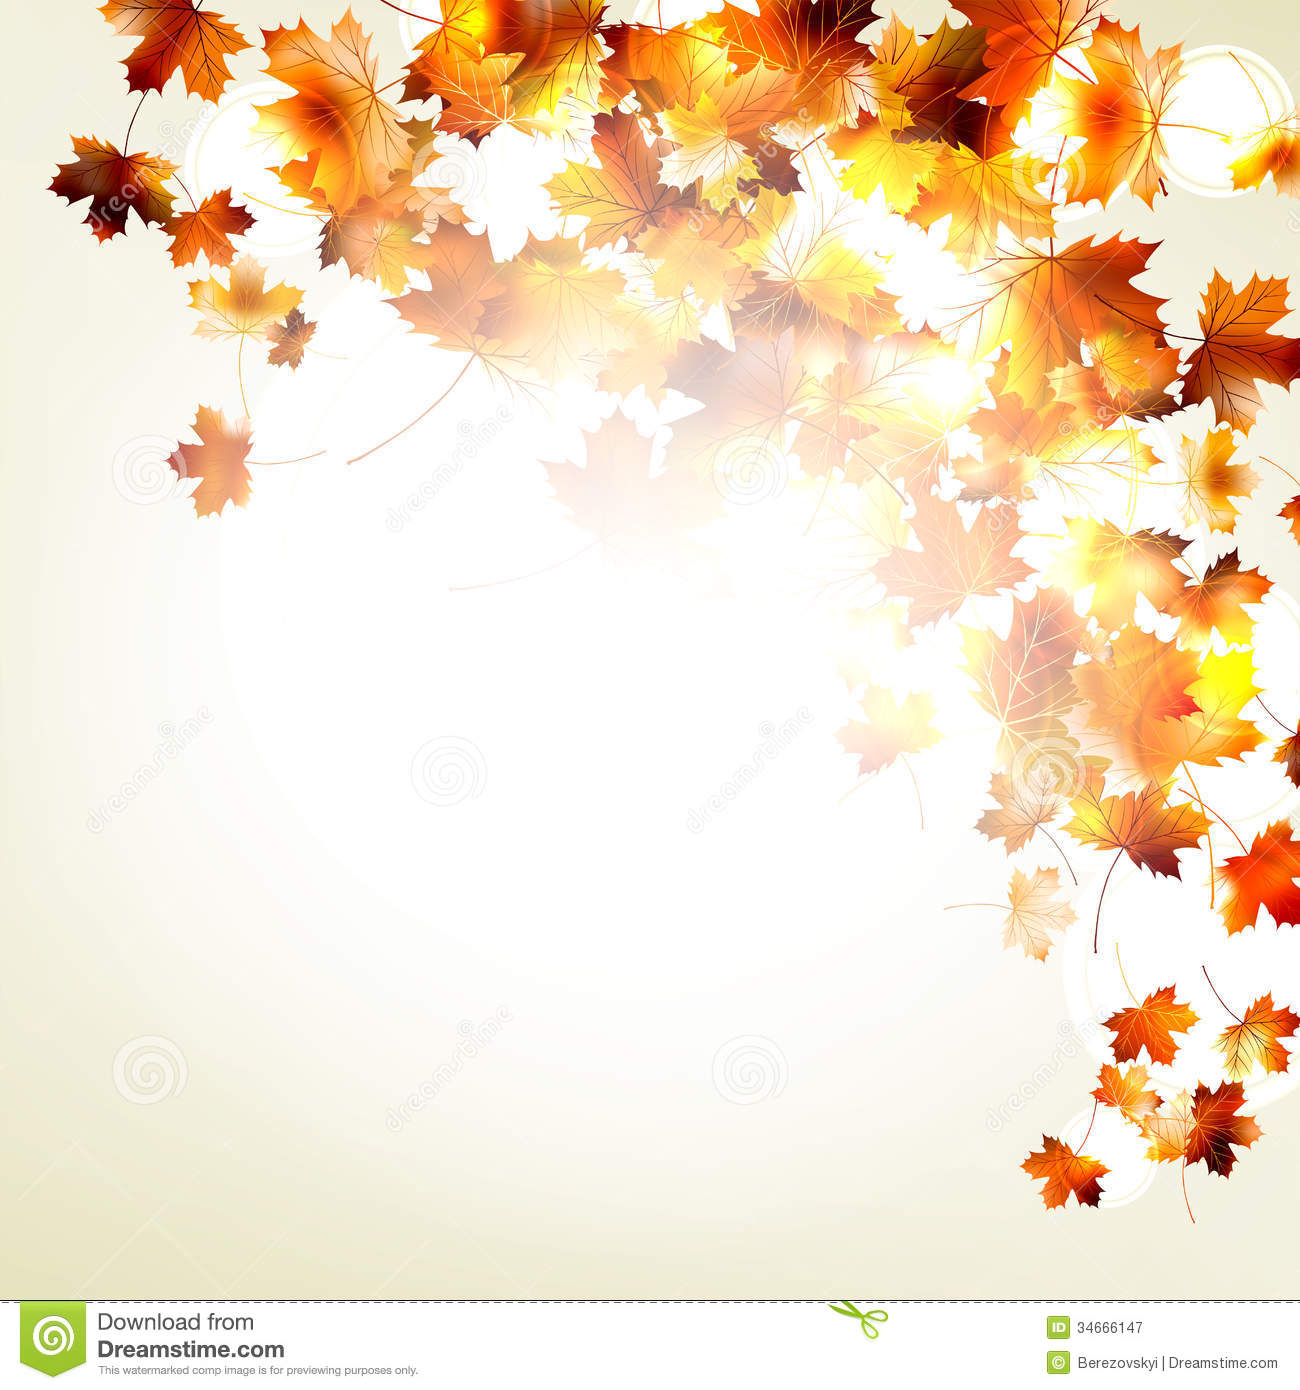 Free Animated Falling Leaves Wallpaper Maple Autumn Leaves Background Eps 10 Royalty Free Stock